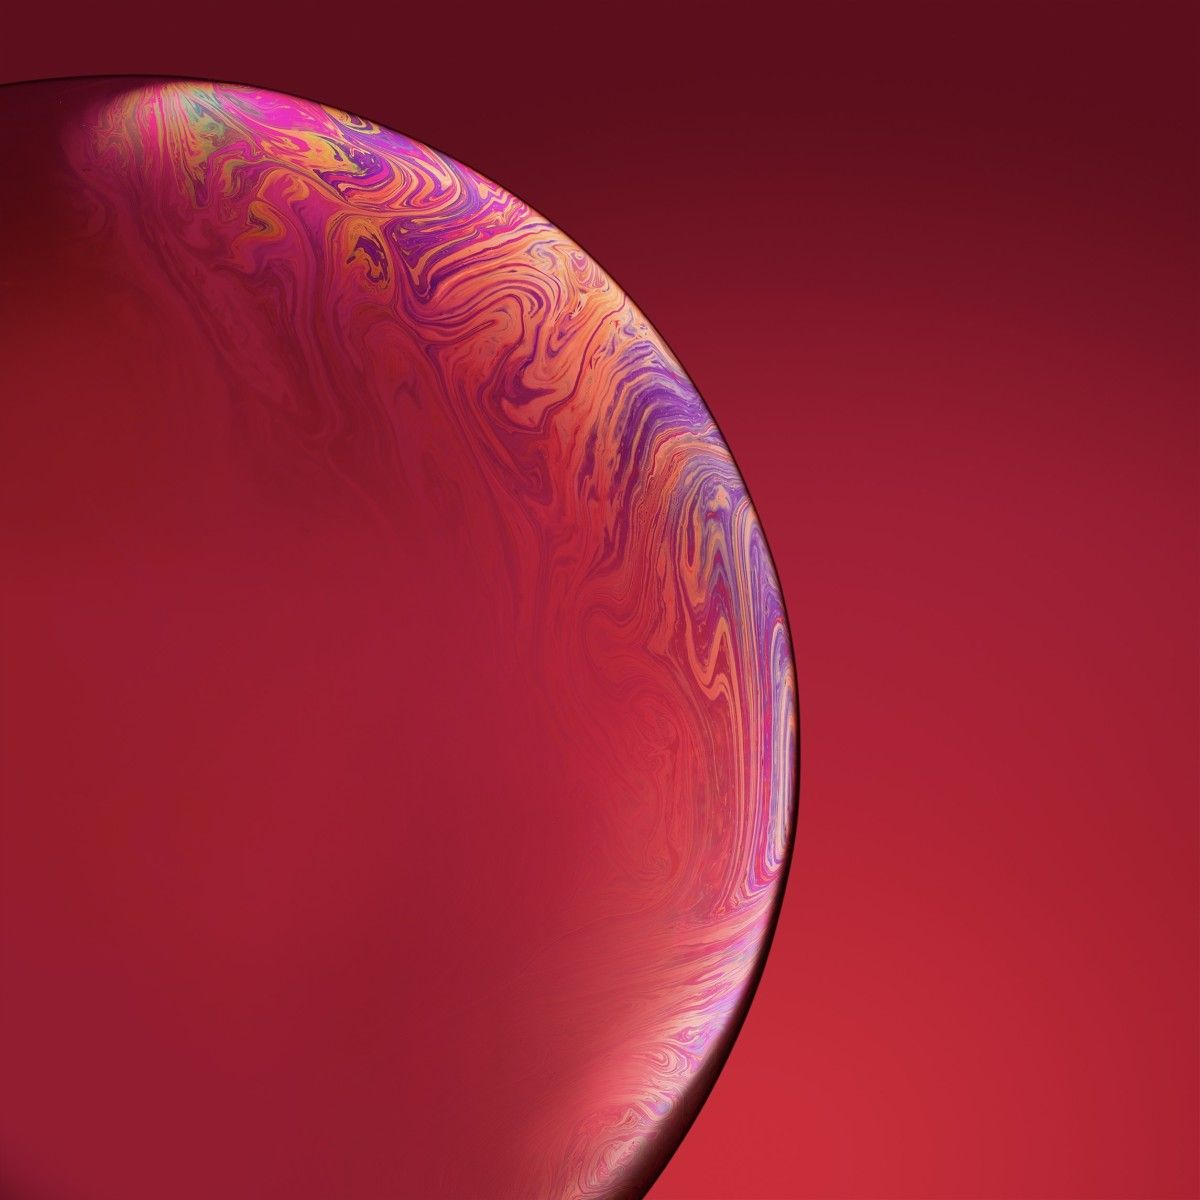 Download The All New Iphone Xr Bubble Wallpapers Here